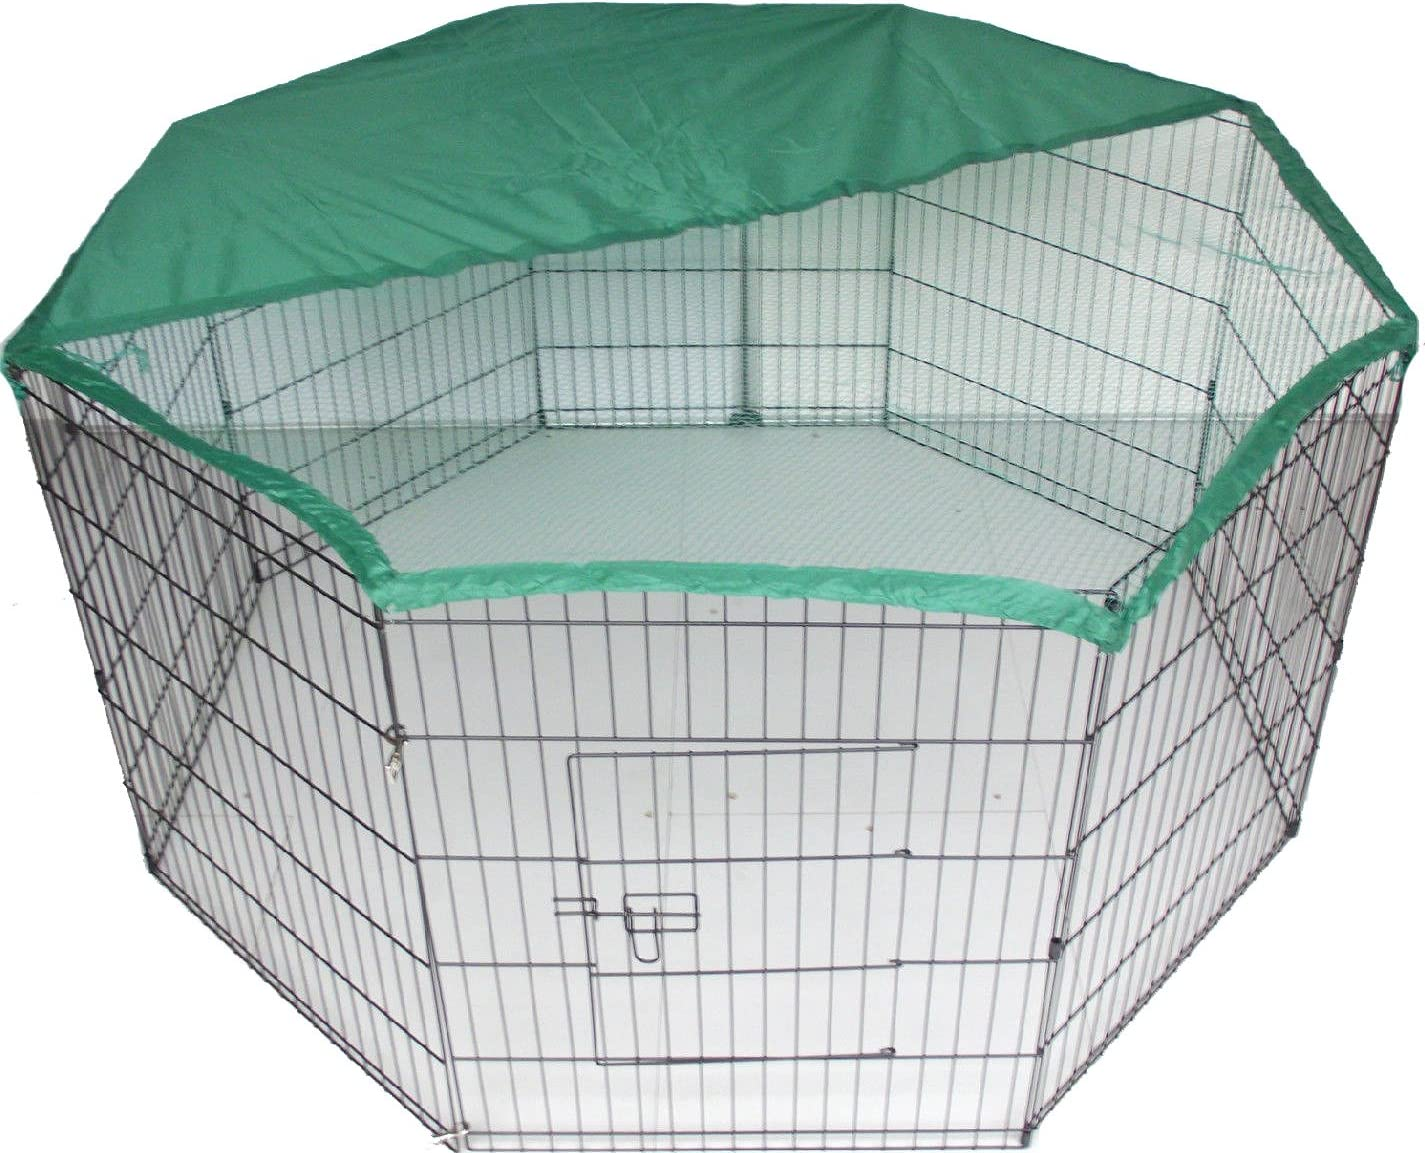 Outdoor Rabbit Enclosure